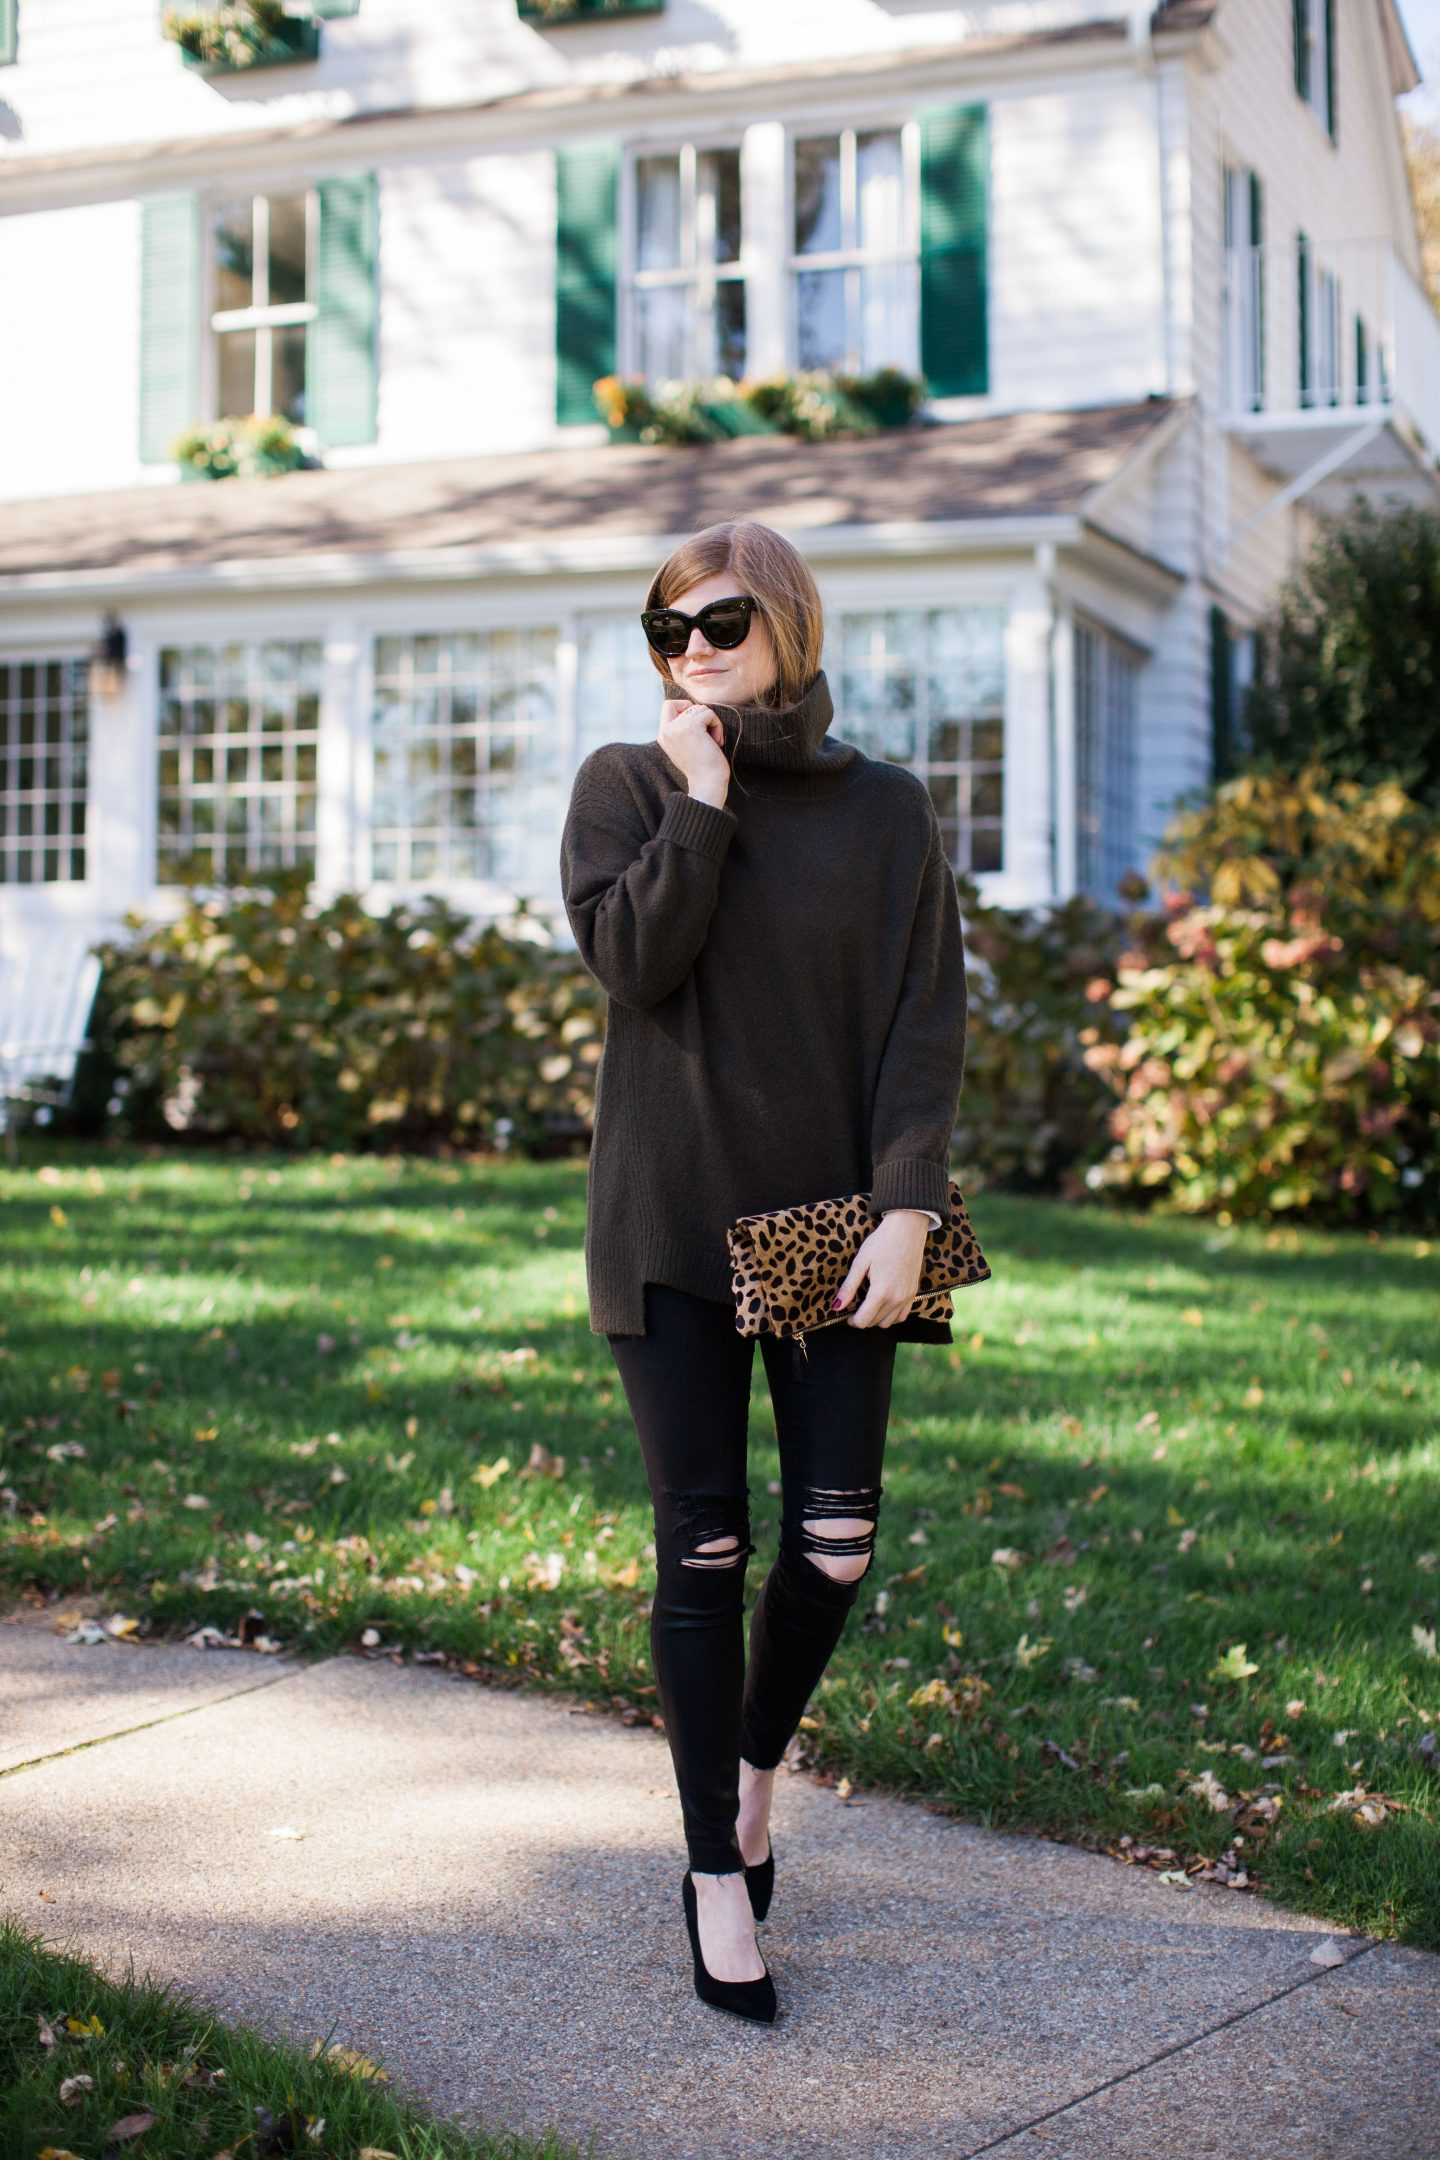 Lifestyle blogger Mollie Sheperdson of Mollie Moore shares a Thanksgiving outfit idea